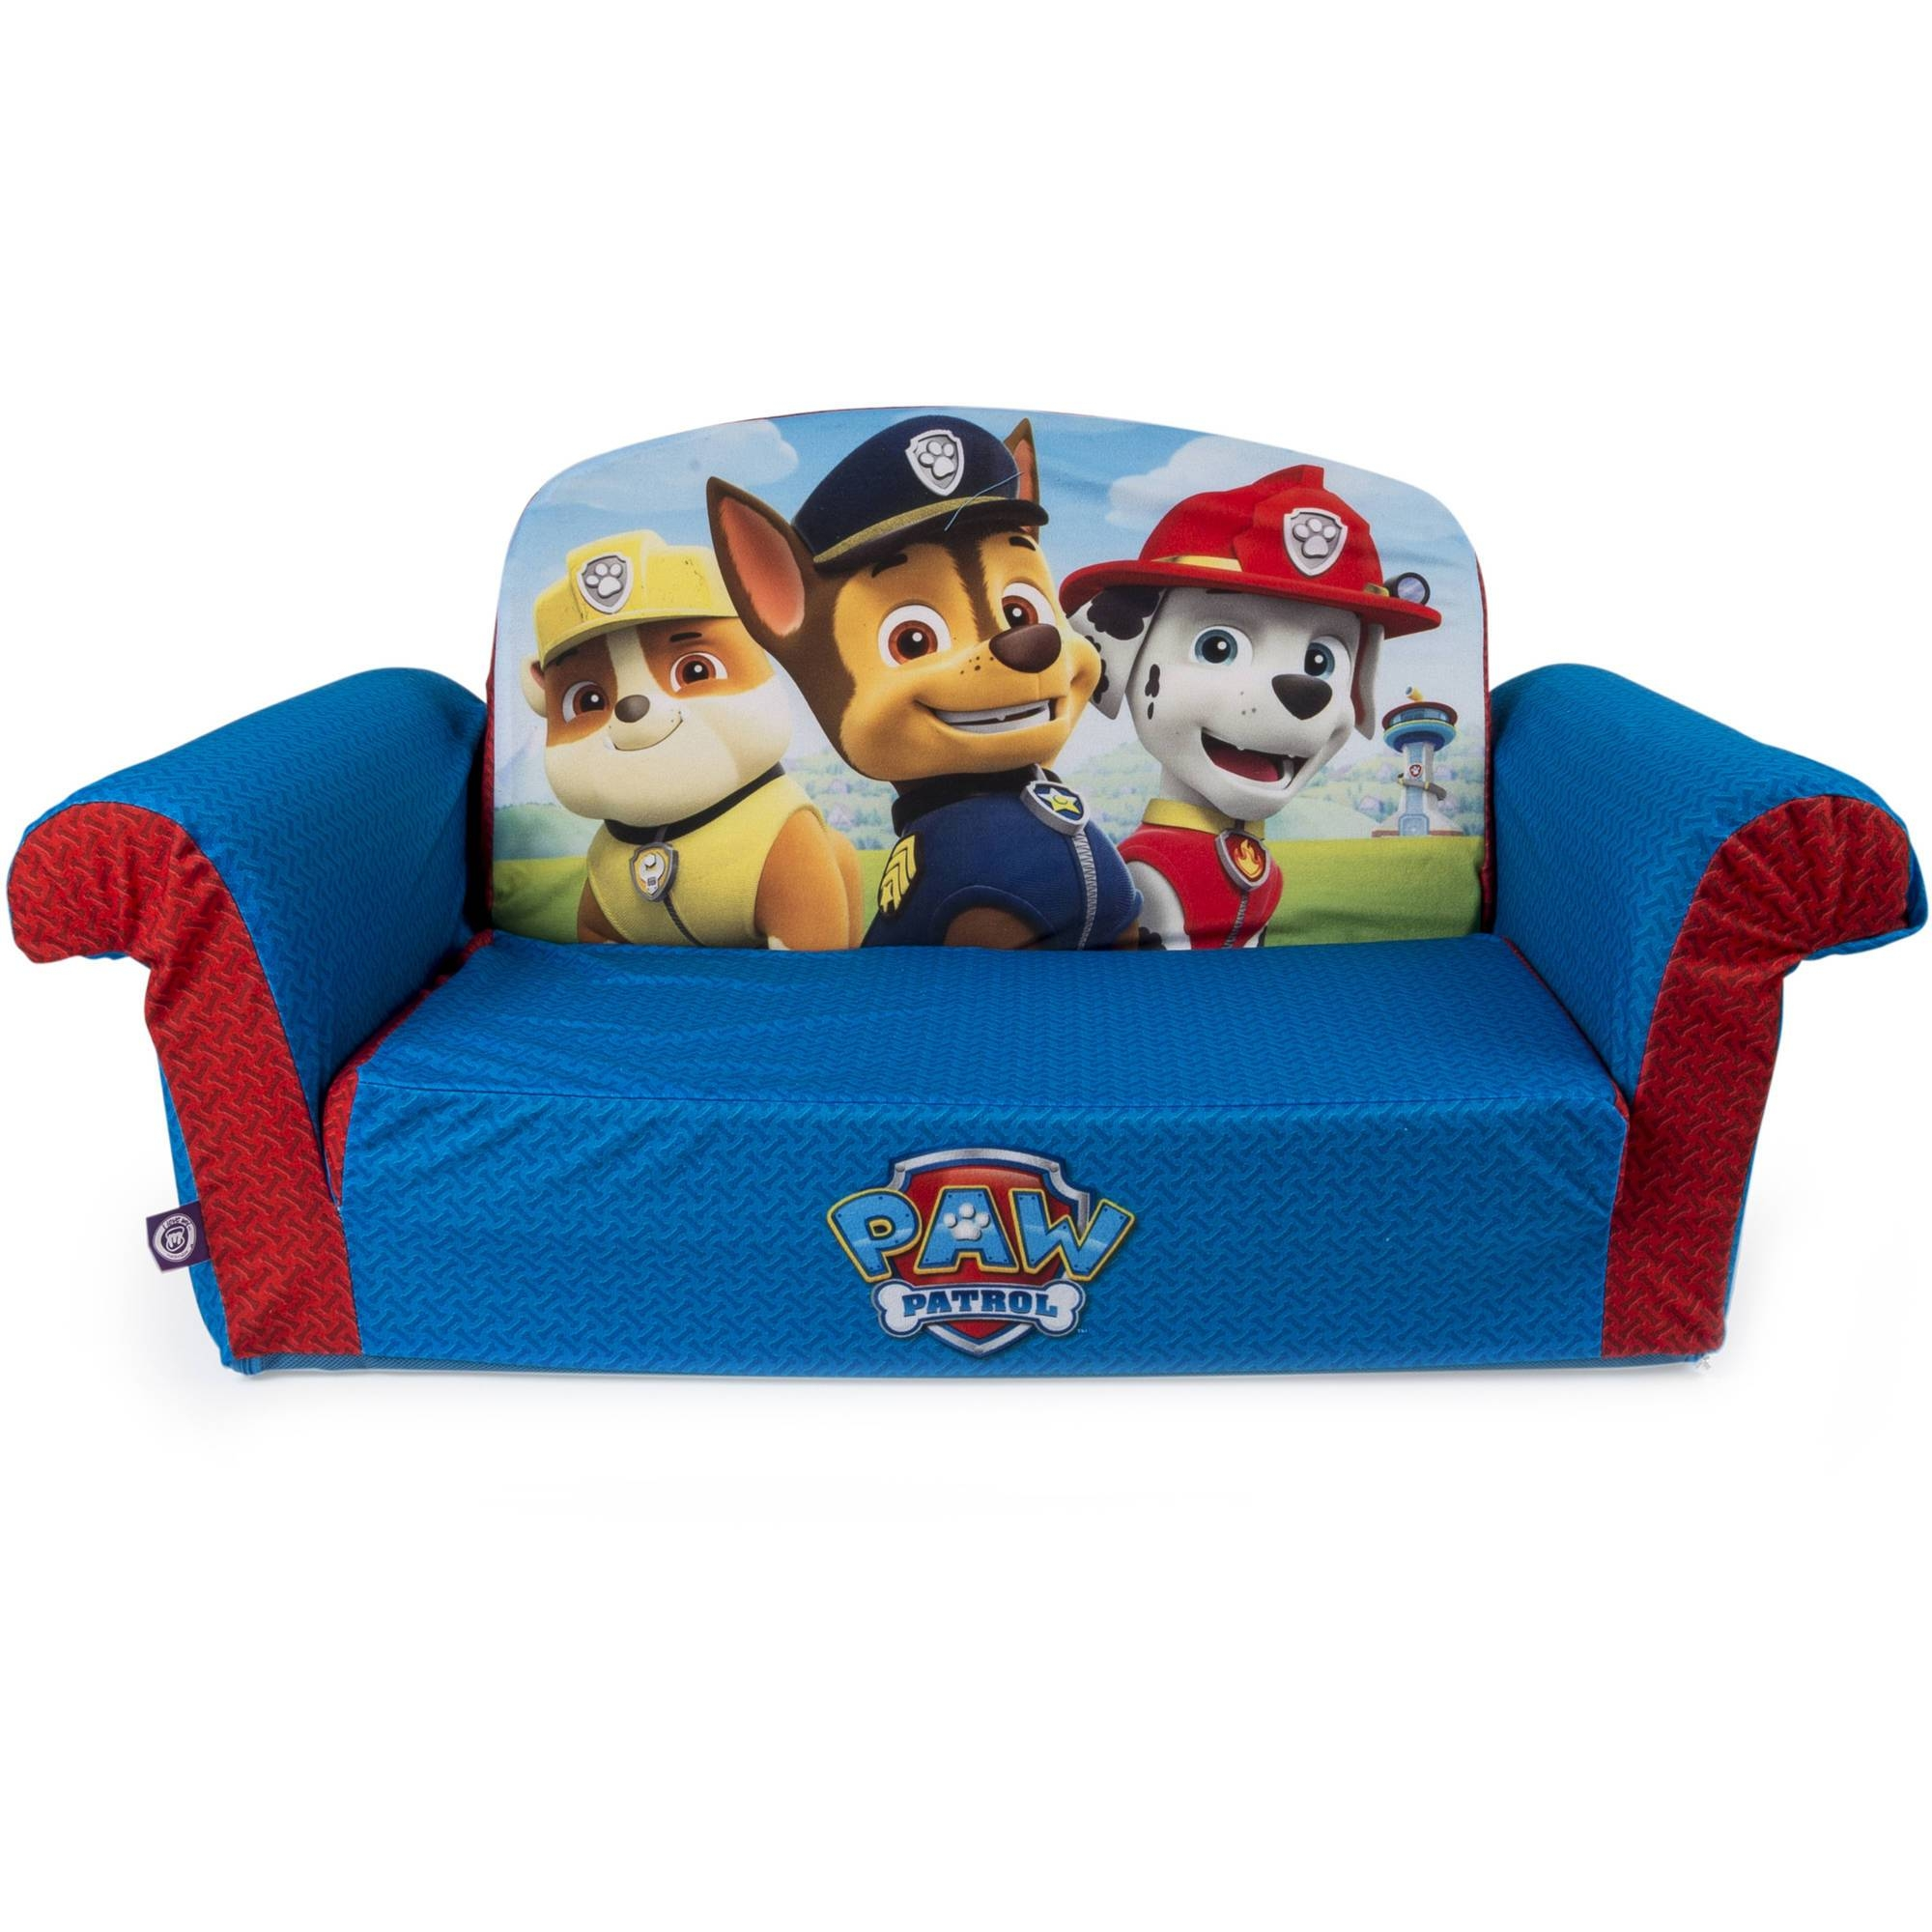 Marshmallow Furniture, Children's 2 In 1 Flip Open Foam Sofa pertaining to Children Sofa Chairs (Image 15 of 30)